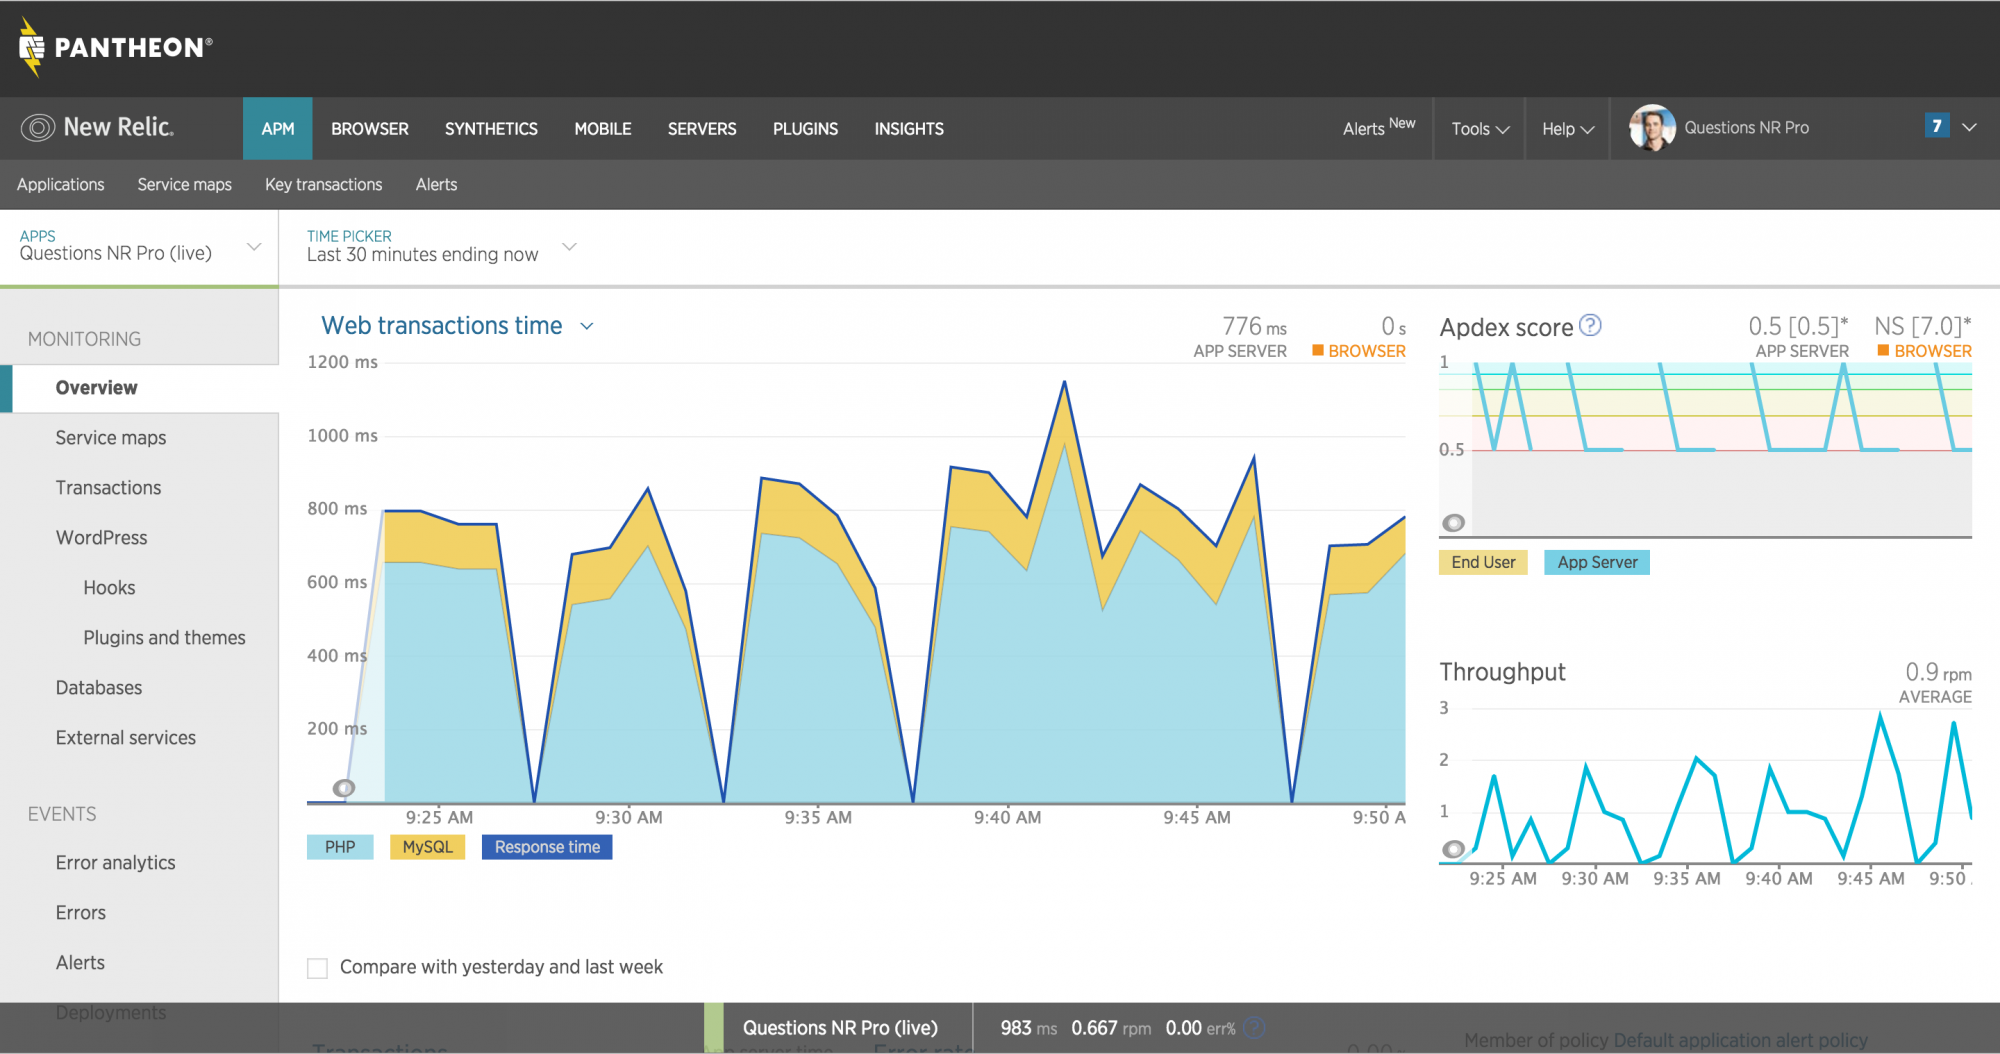 Getting Started with New Relic APM Pro - Pantheon - 웹